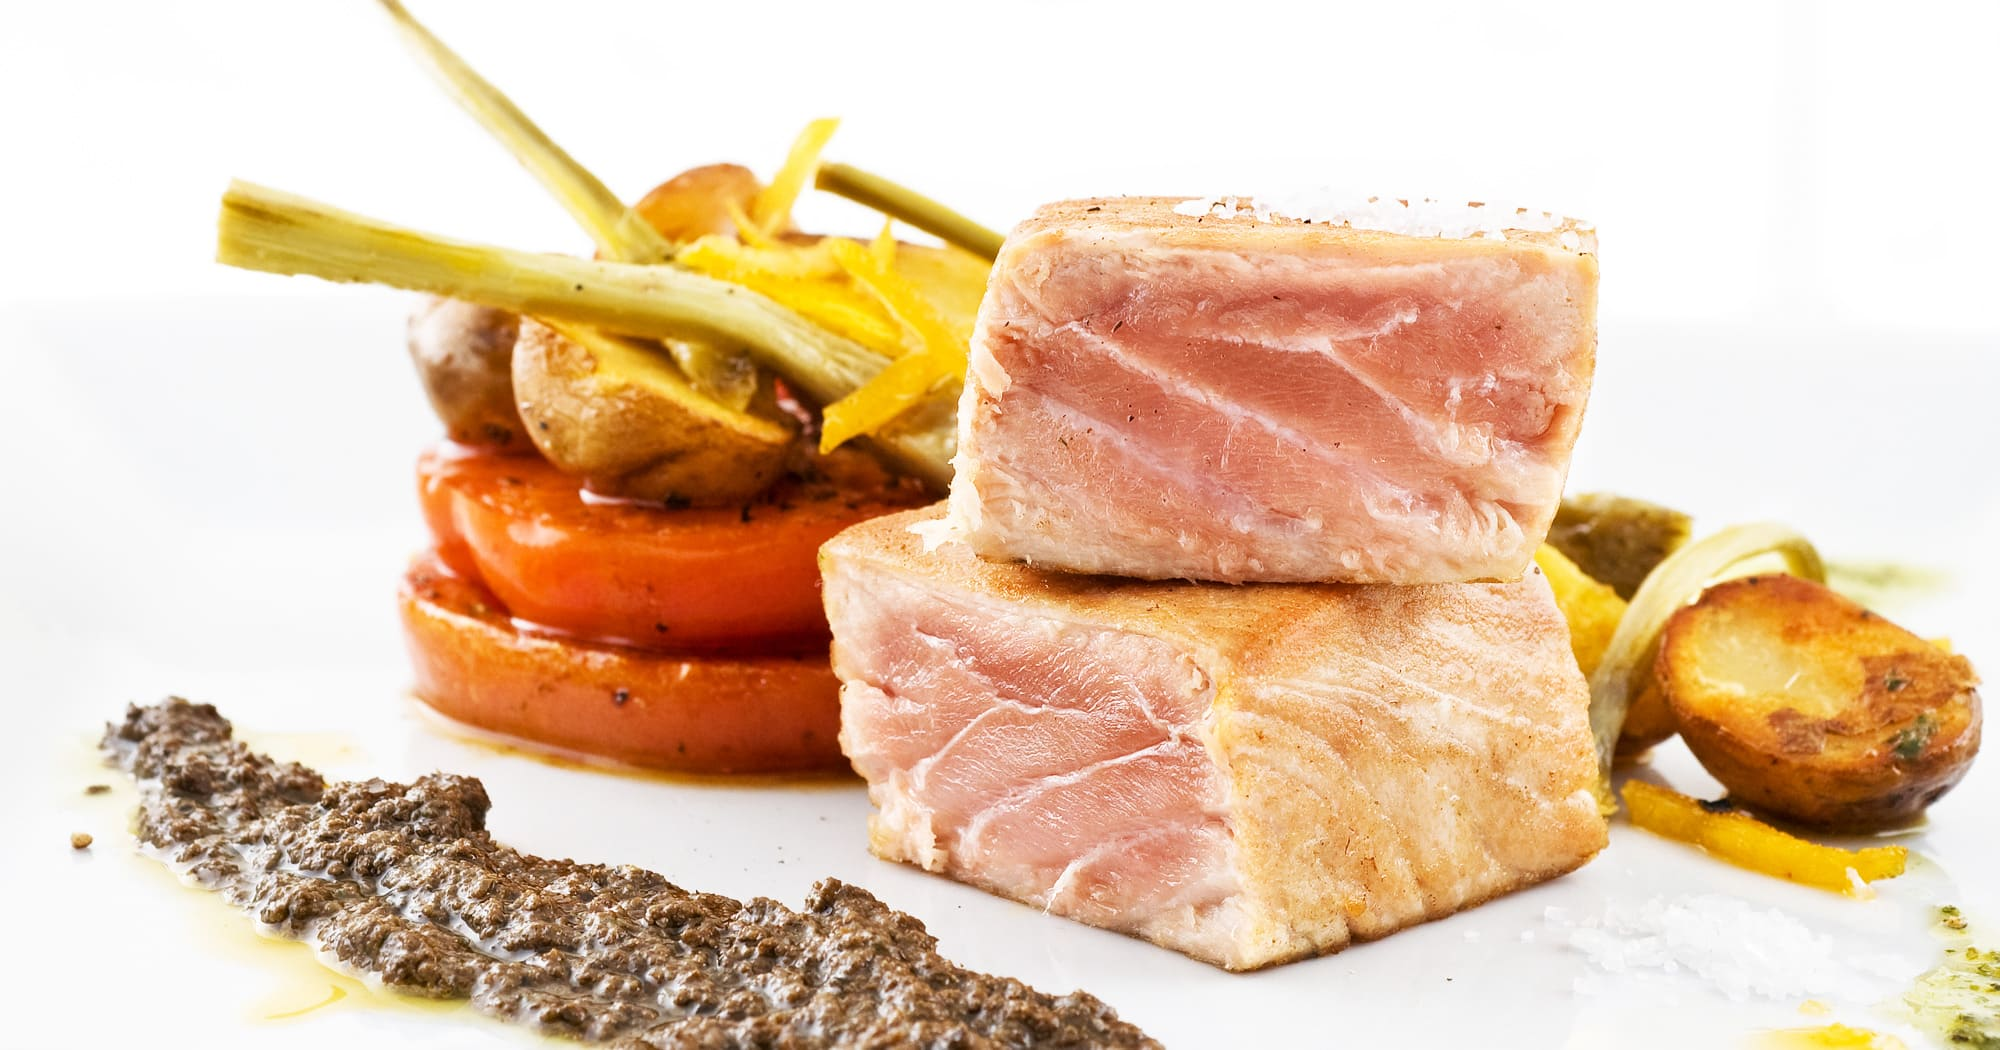 Sicilian Marinated Tuna steak recipe